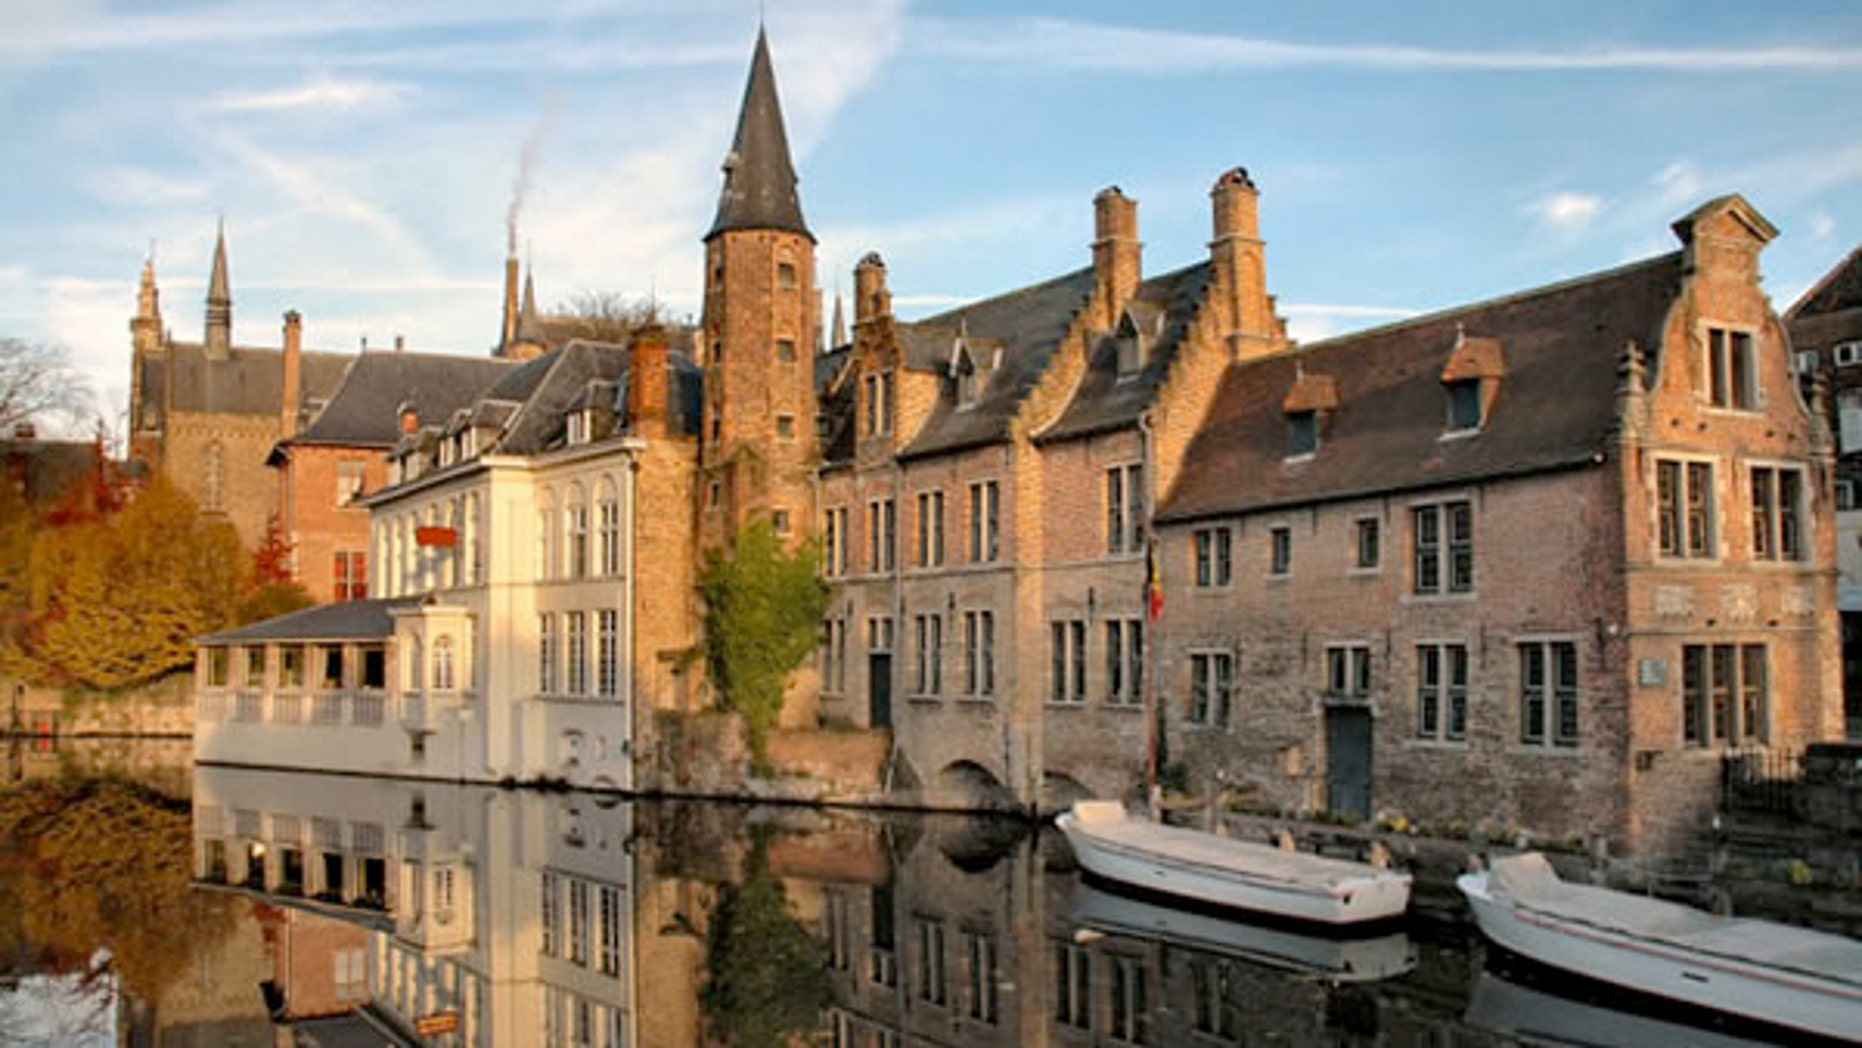 Historic De Halve Maan brewery in Belgium is building a beer pipeline to connect to a bottling factory two miles away.